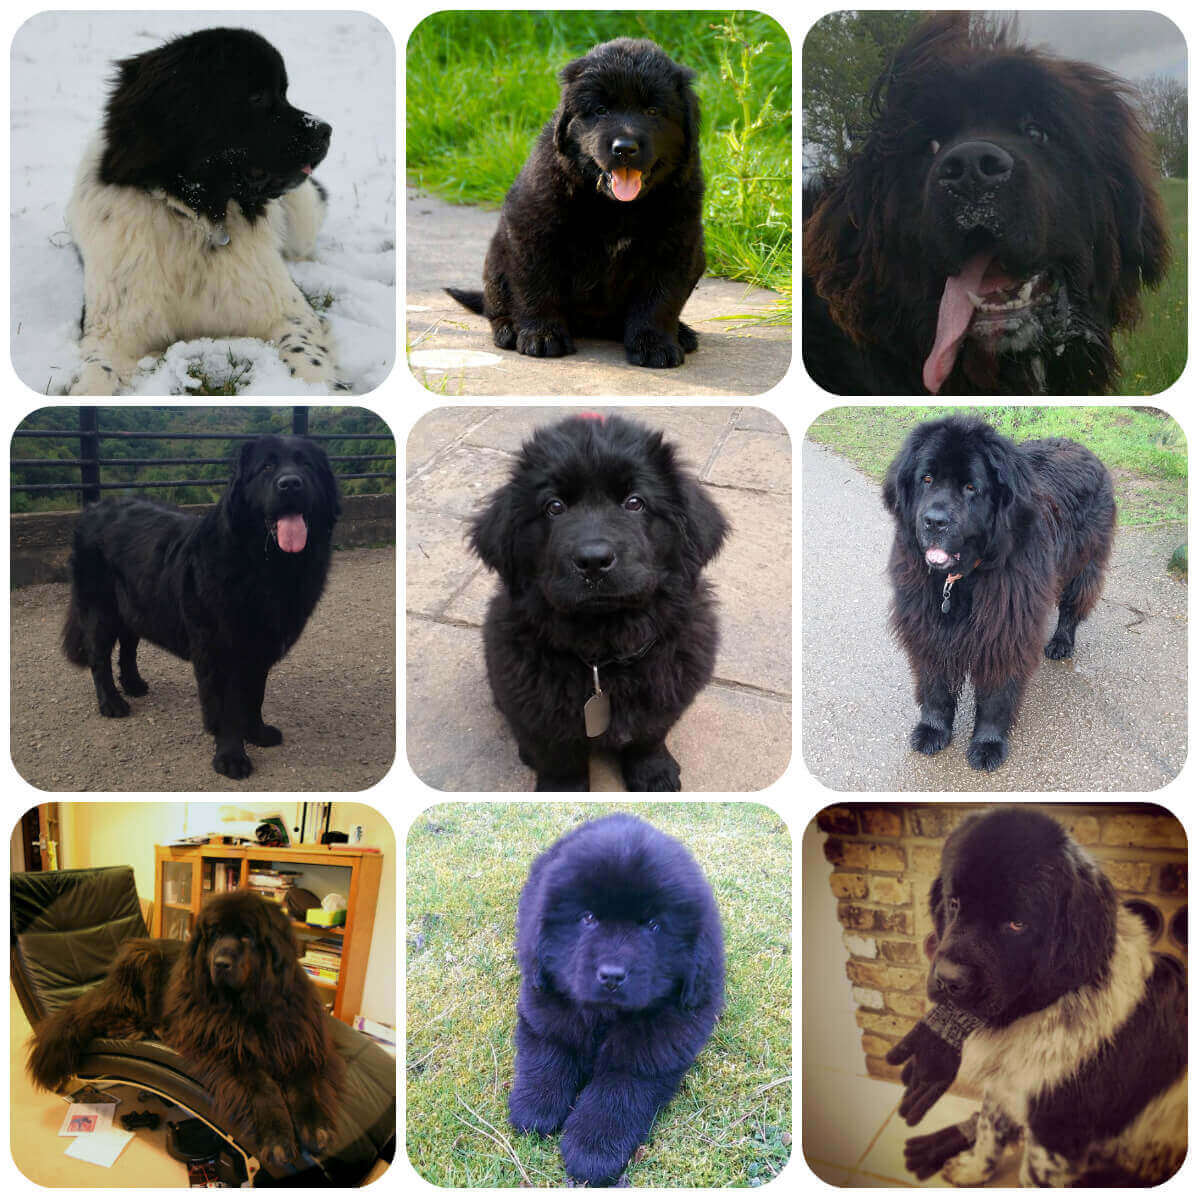 A collage of newfoundland dogs and puppies, part of BorrowMyDoggy's guide to dog breeds.